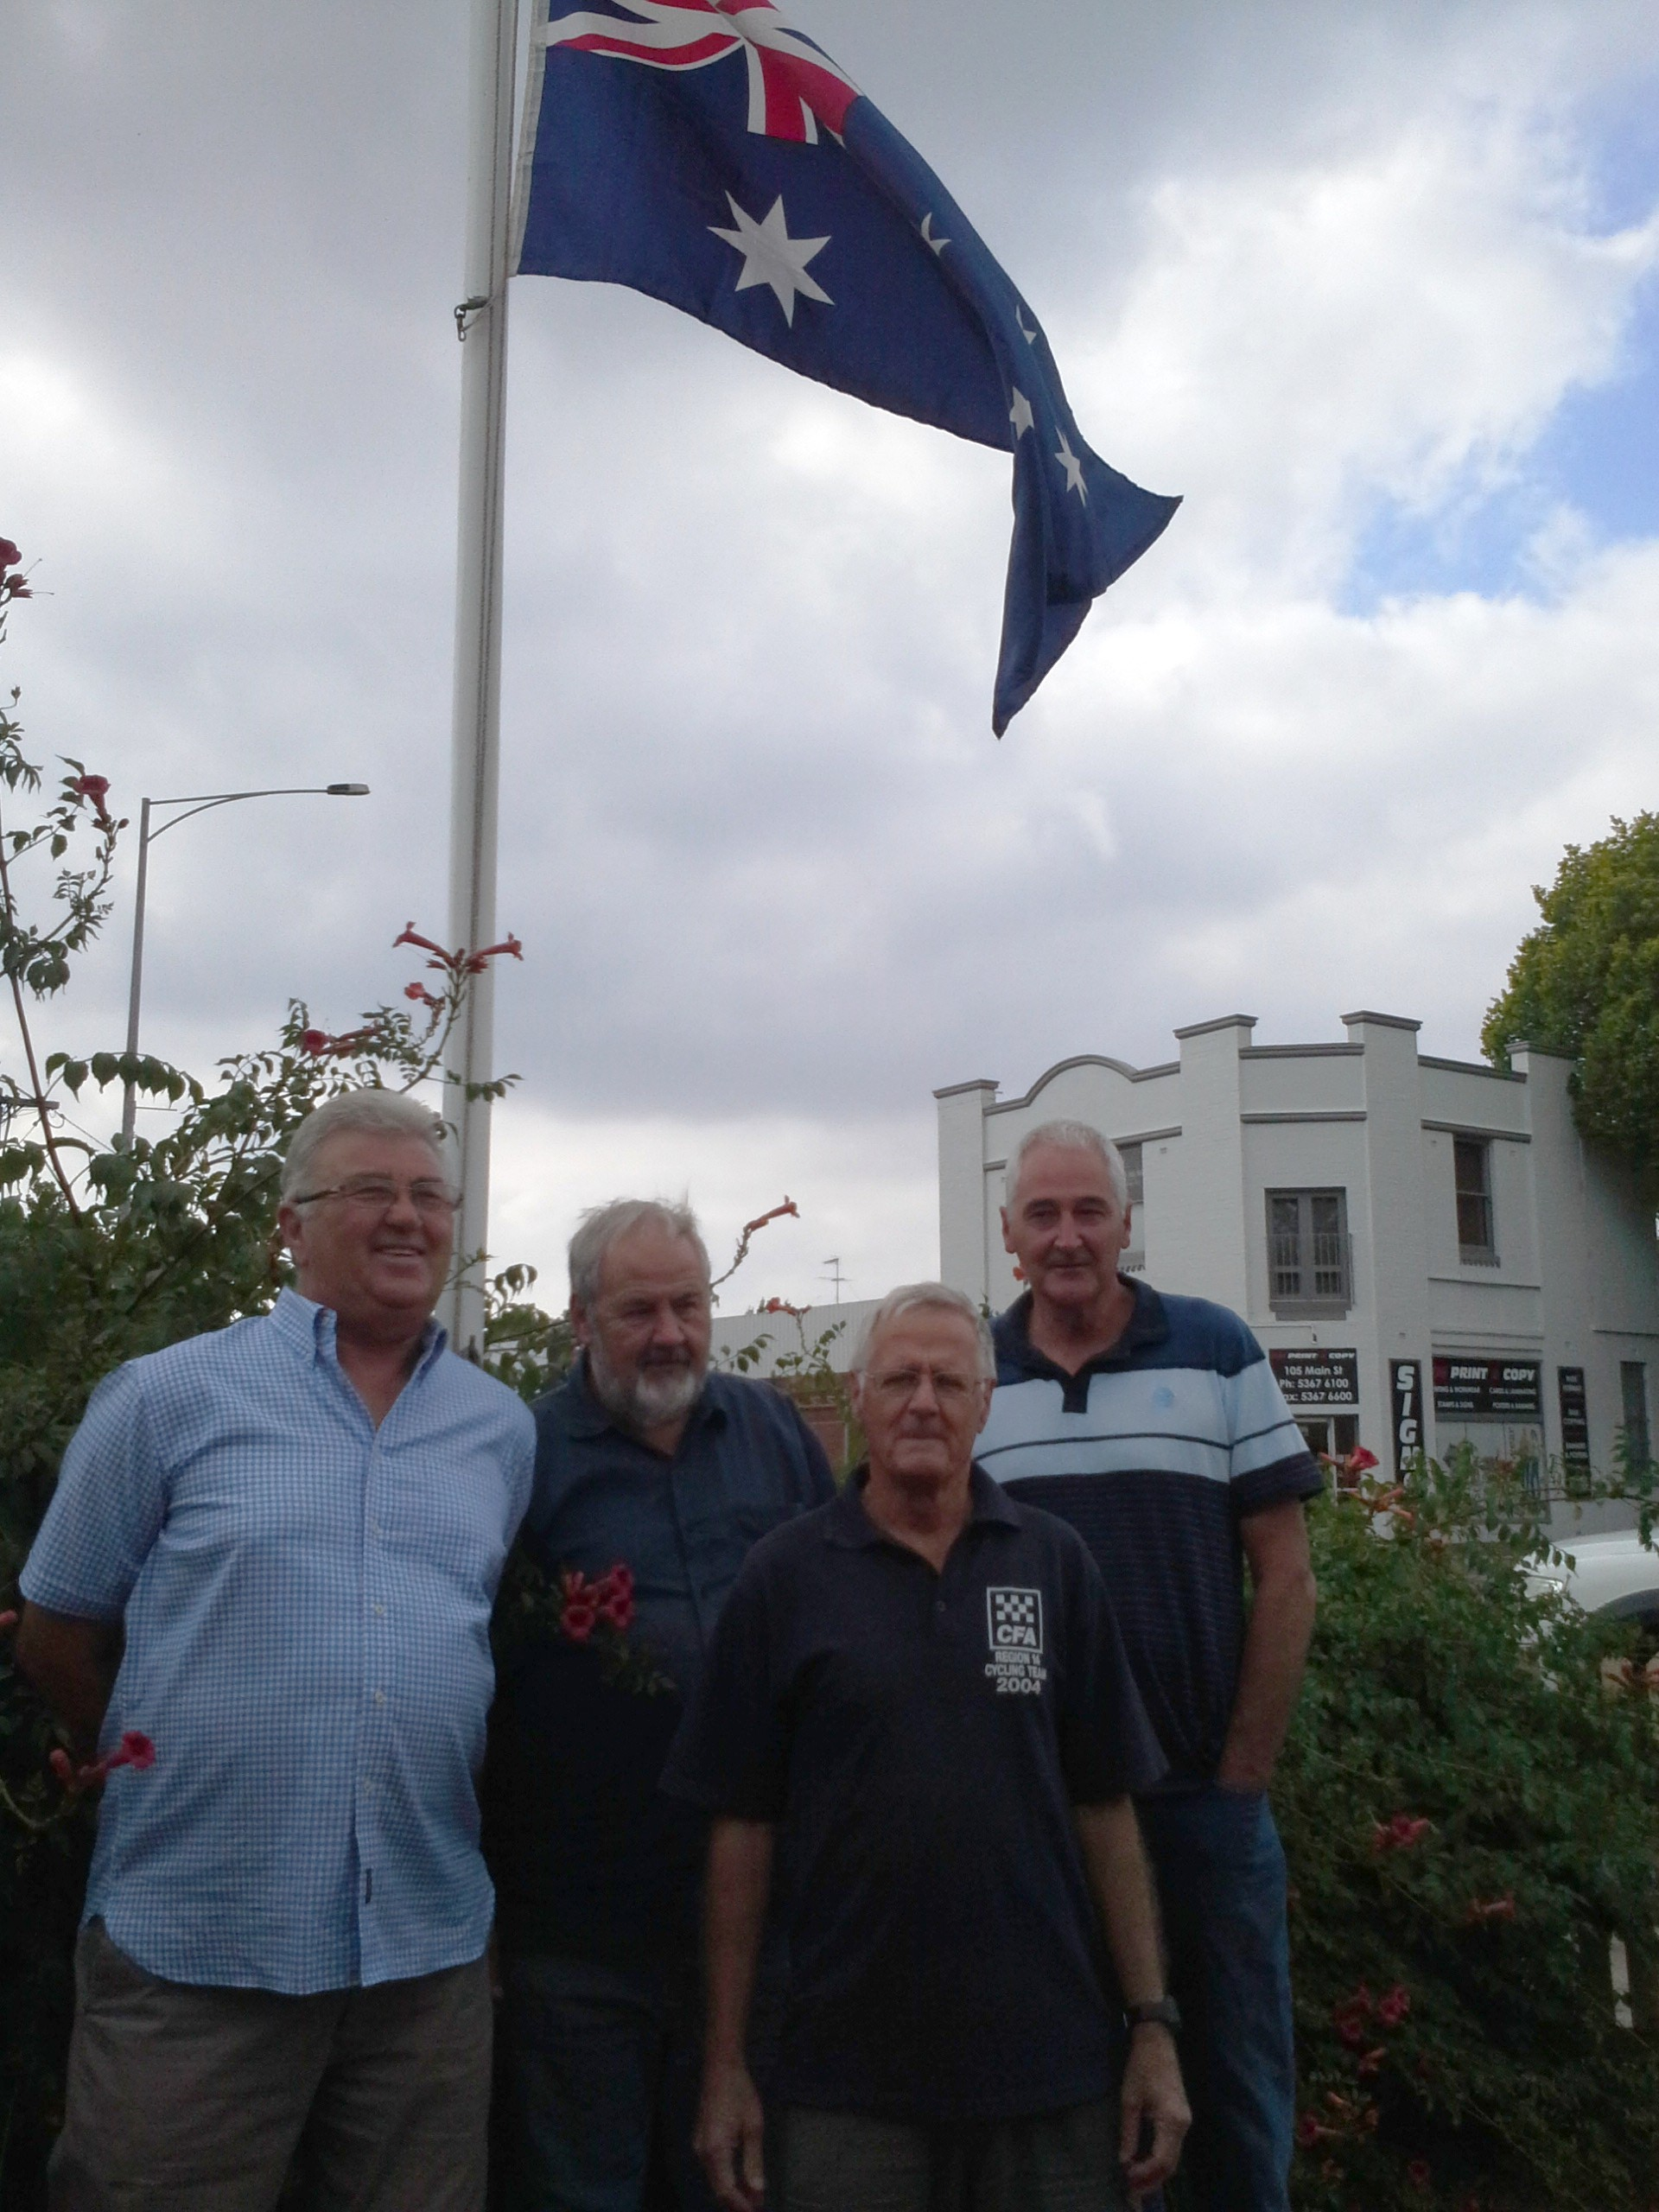 Alan with Tony, Geoff and Russ.